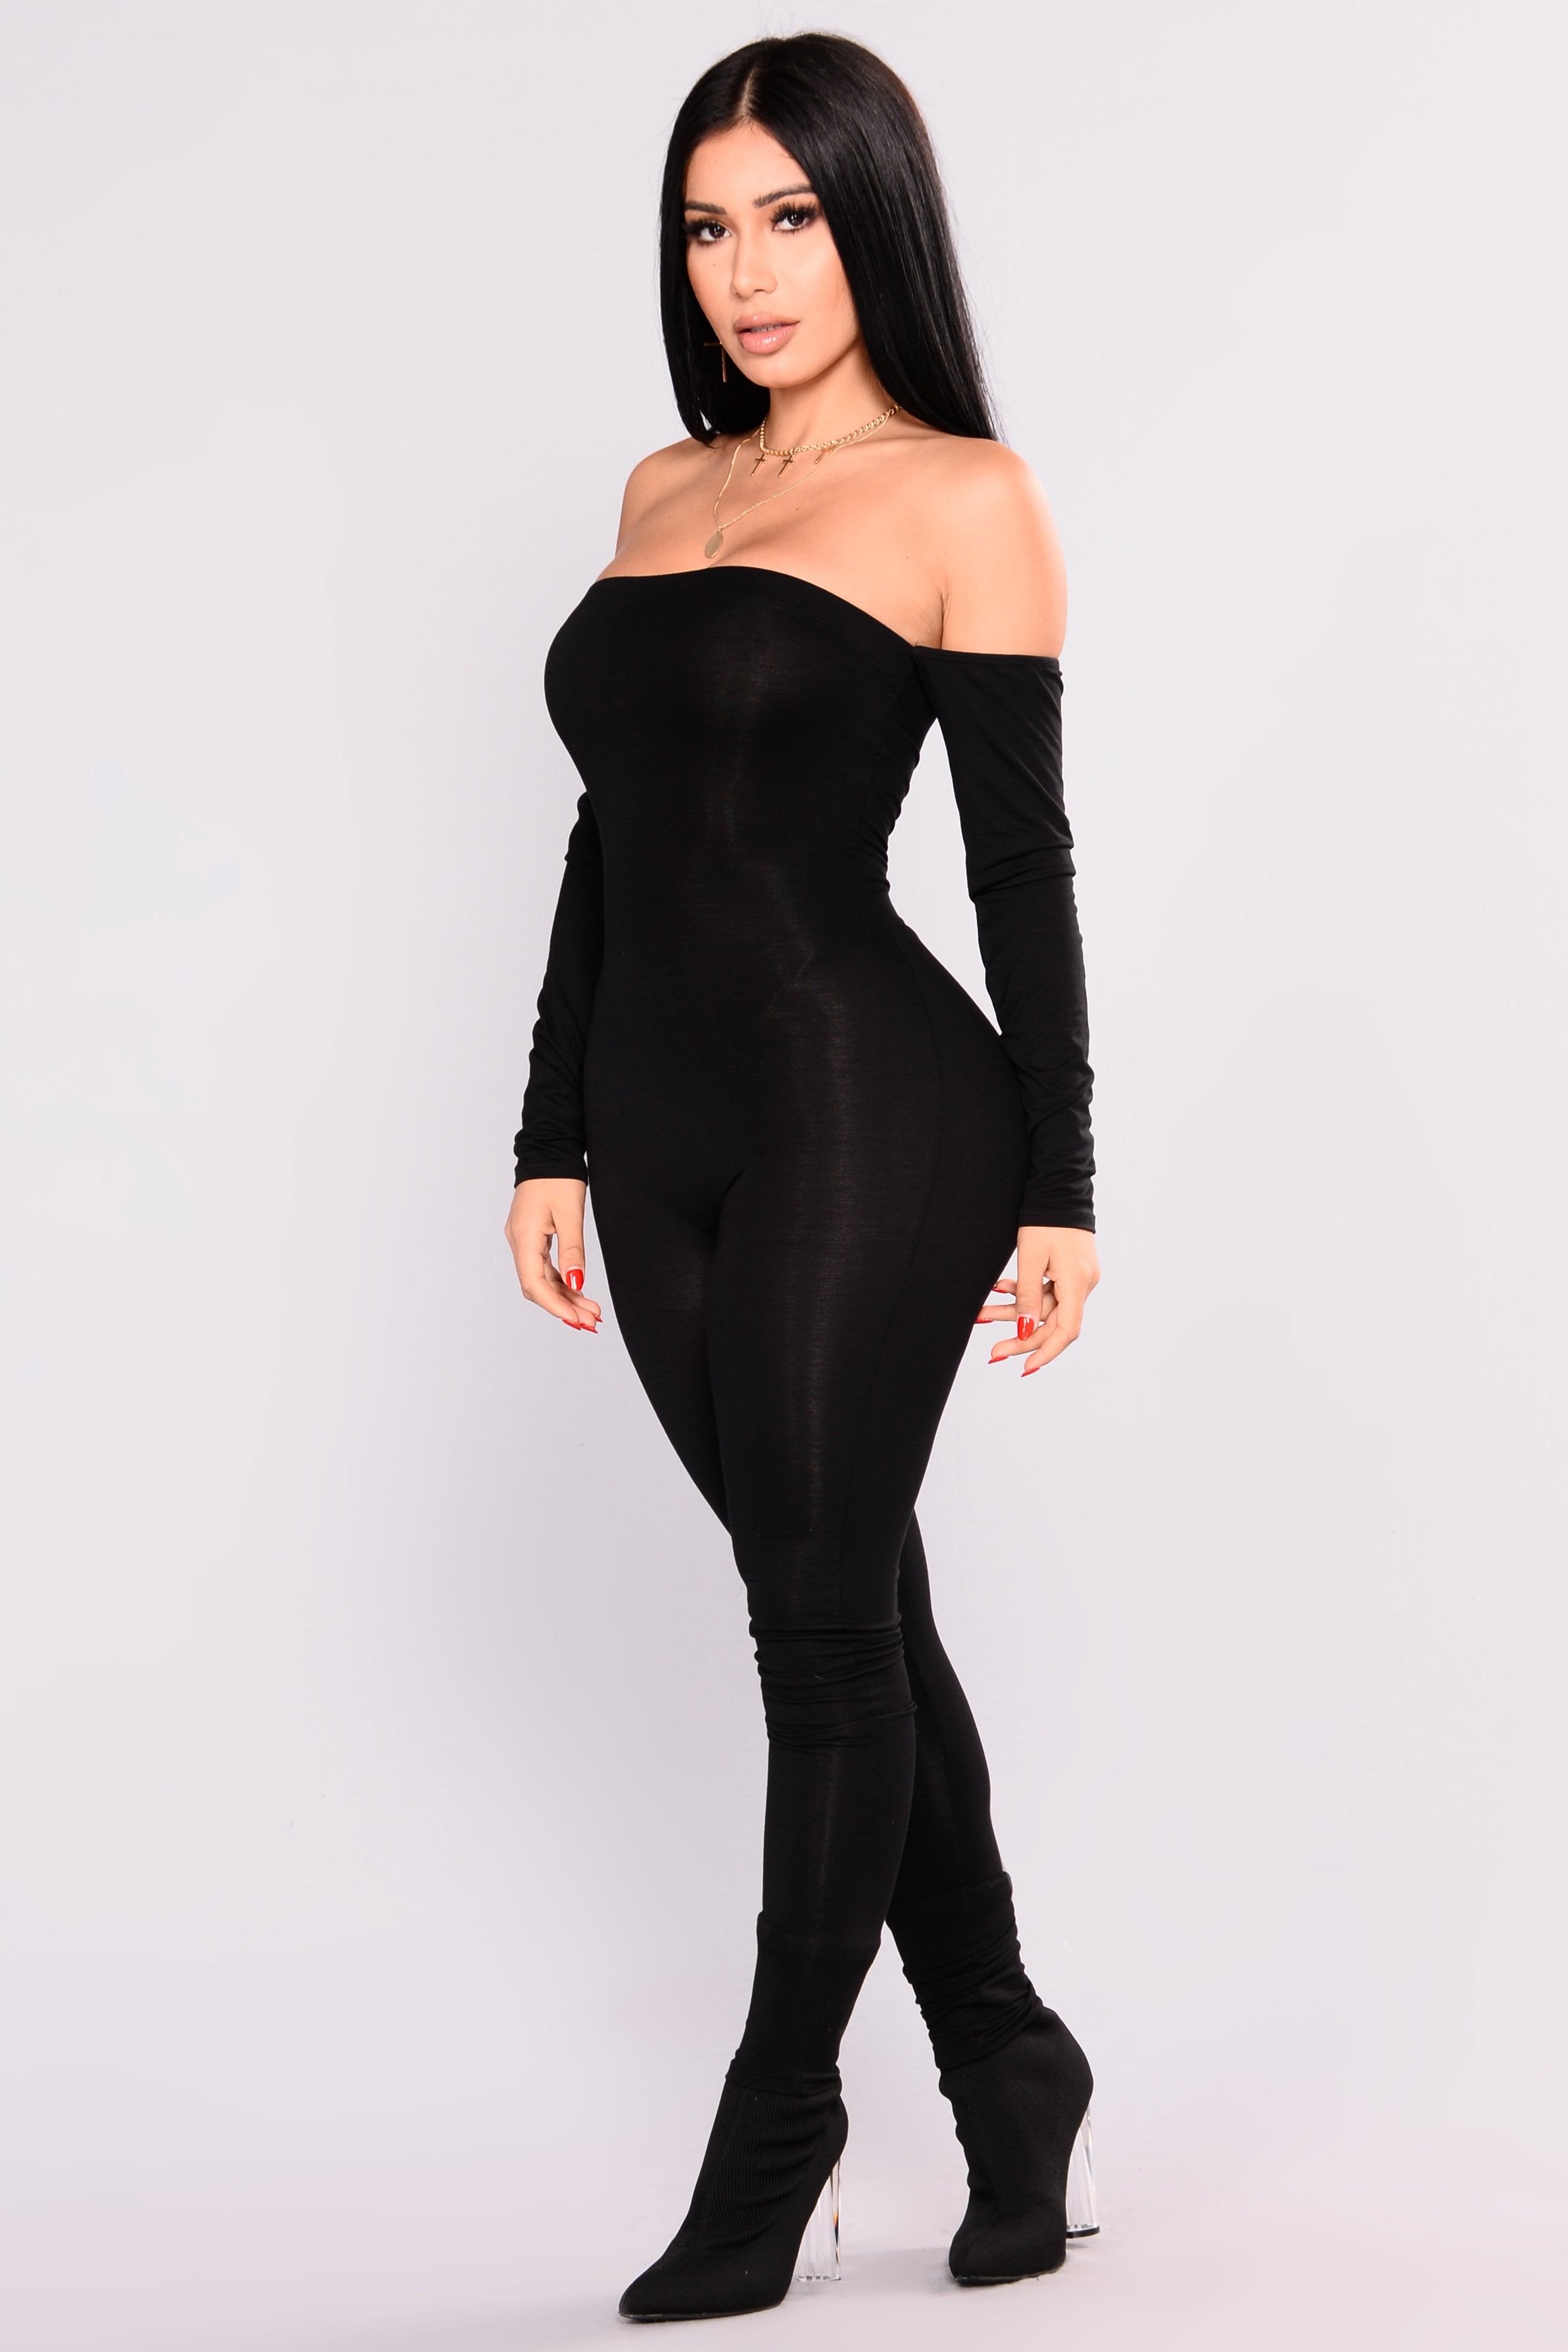 Shop for jumpsuits and rompers for women at eternal-sv.tk Find a wide range of women's jumpsuit and romper styles from top brands. Free shipping and returns.